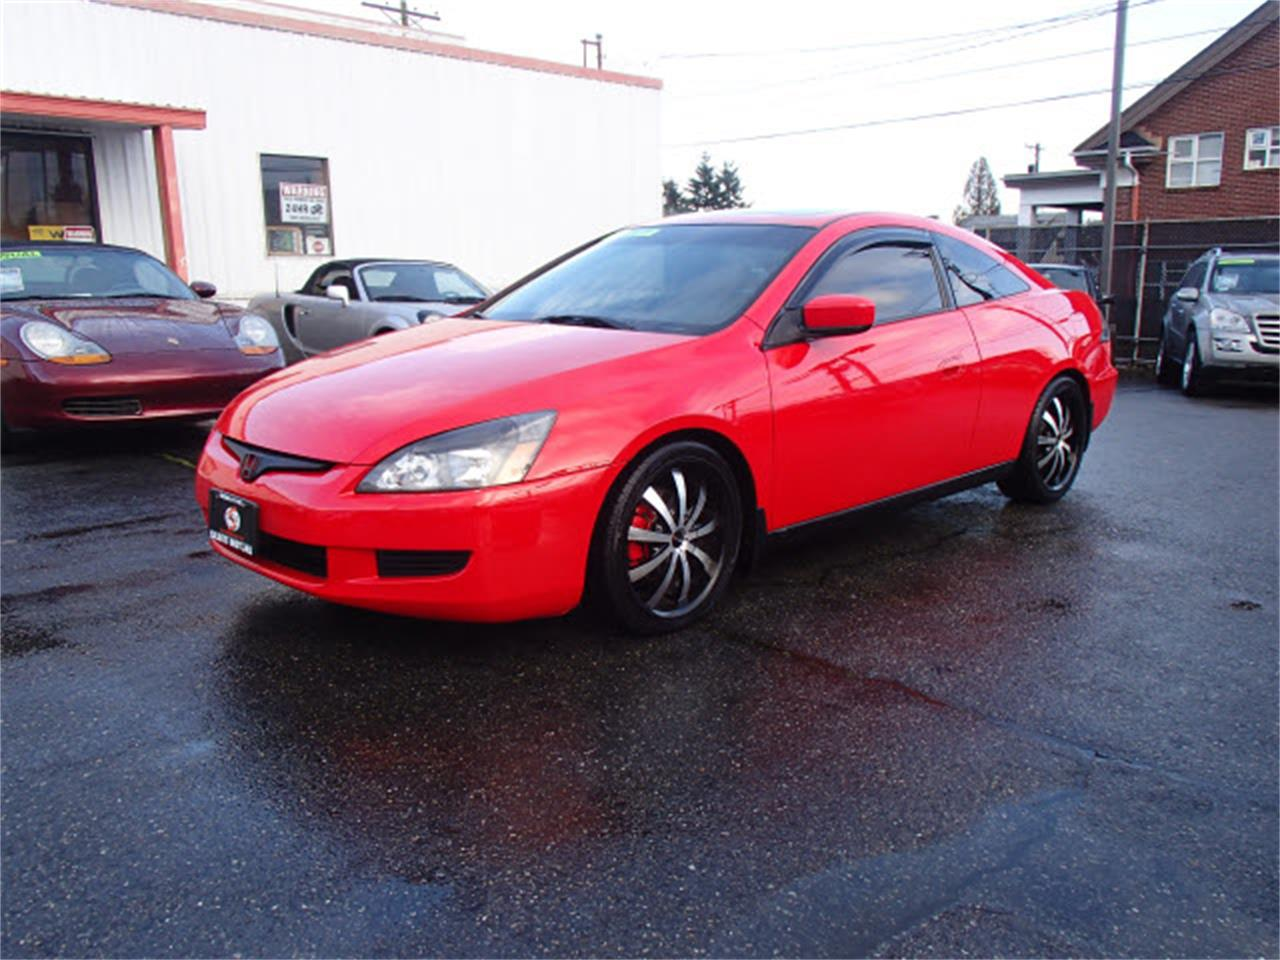 Large Picture of '05 Accord - $6,590.00 - MO6Y